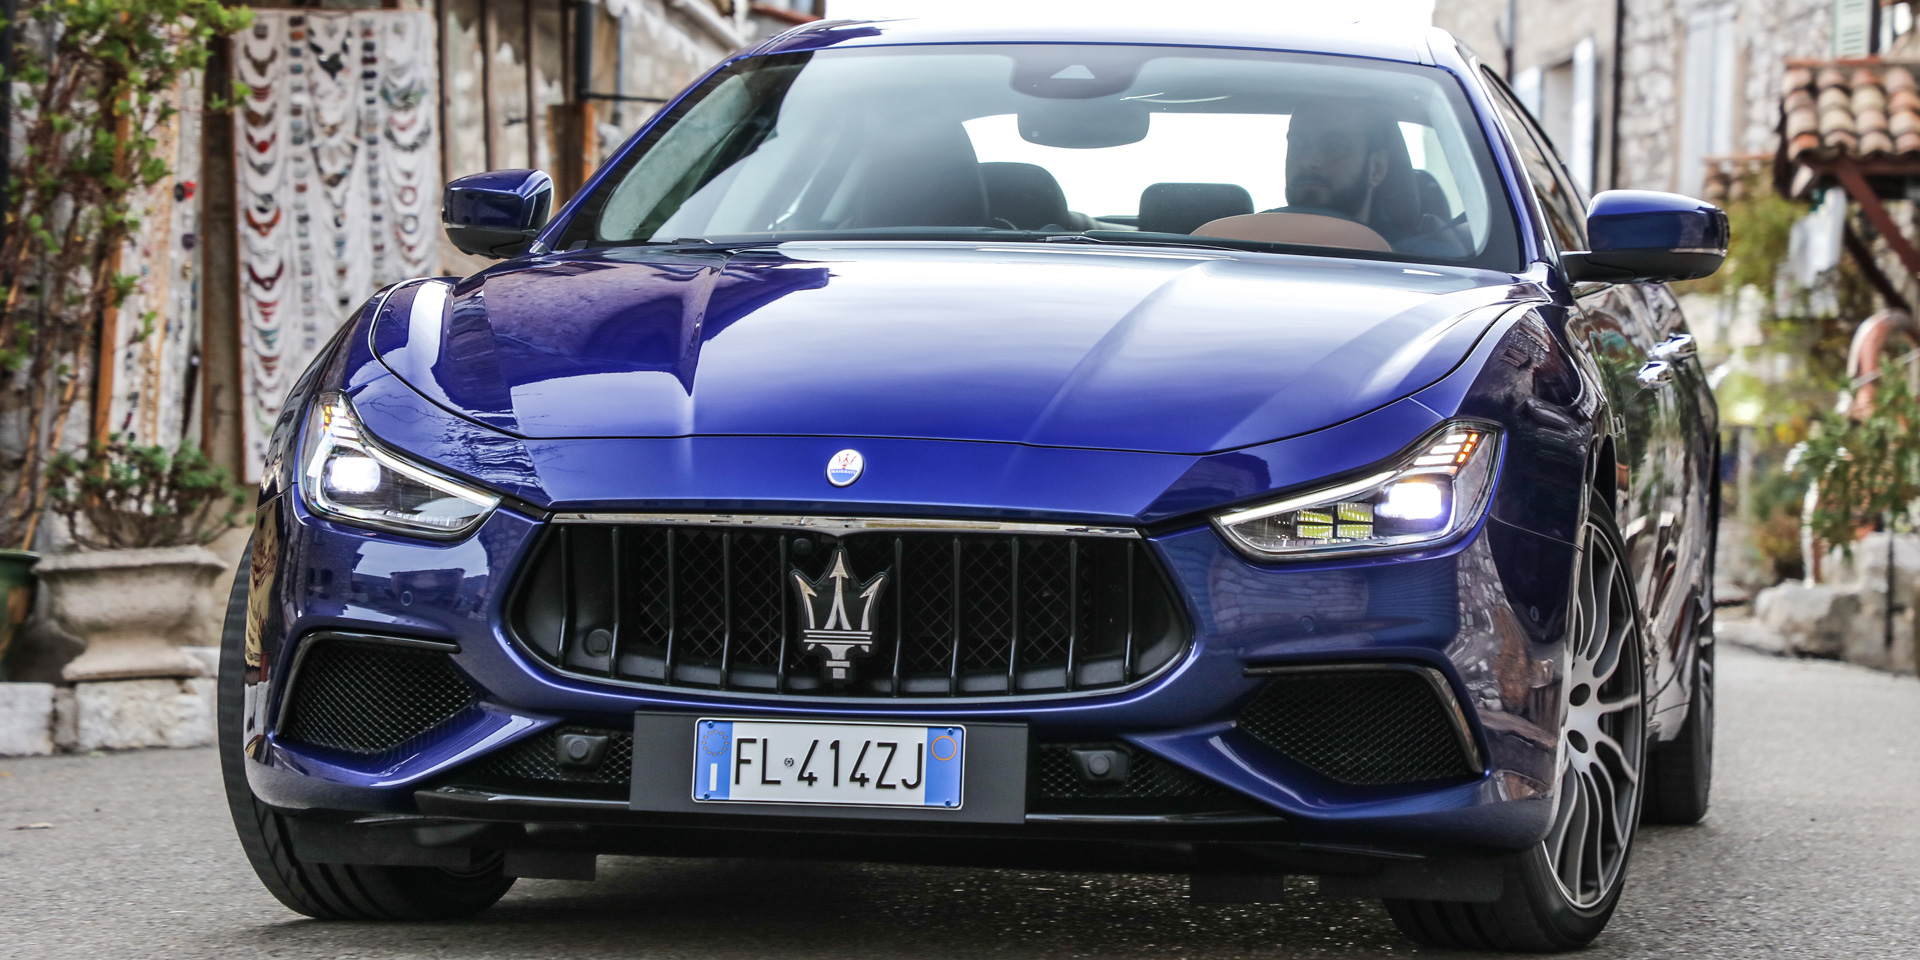 2019 Maserati Ghibli Vehicles On Display Chicago